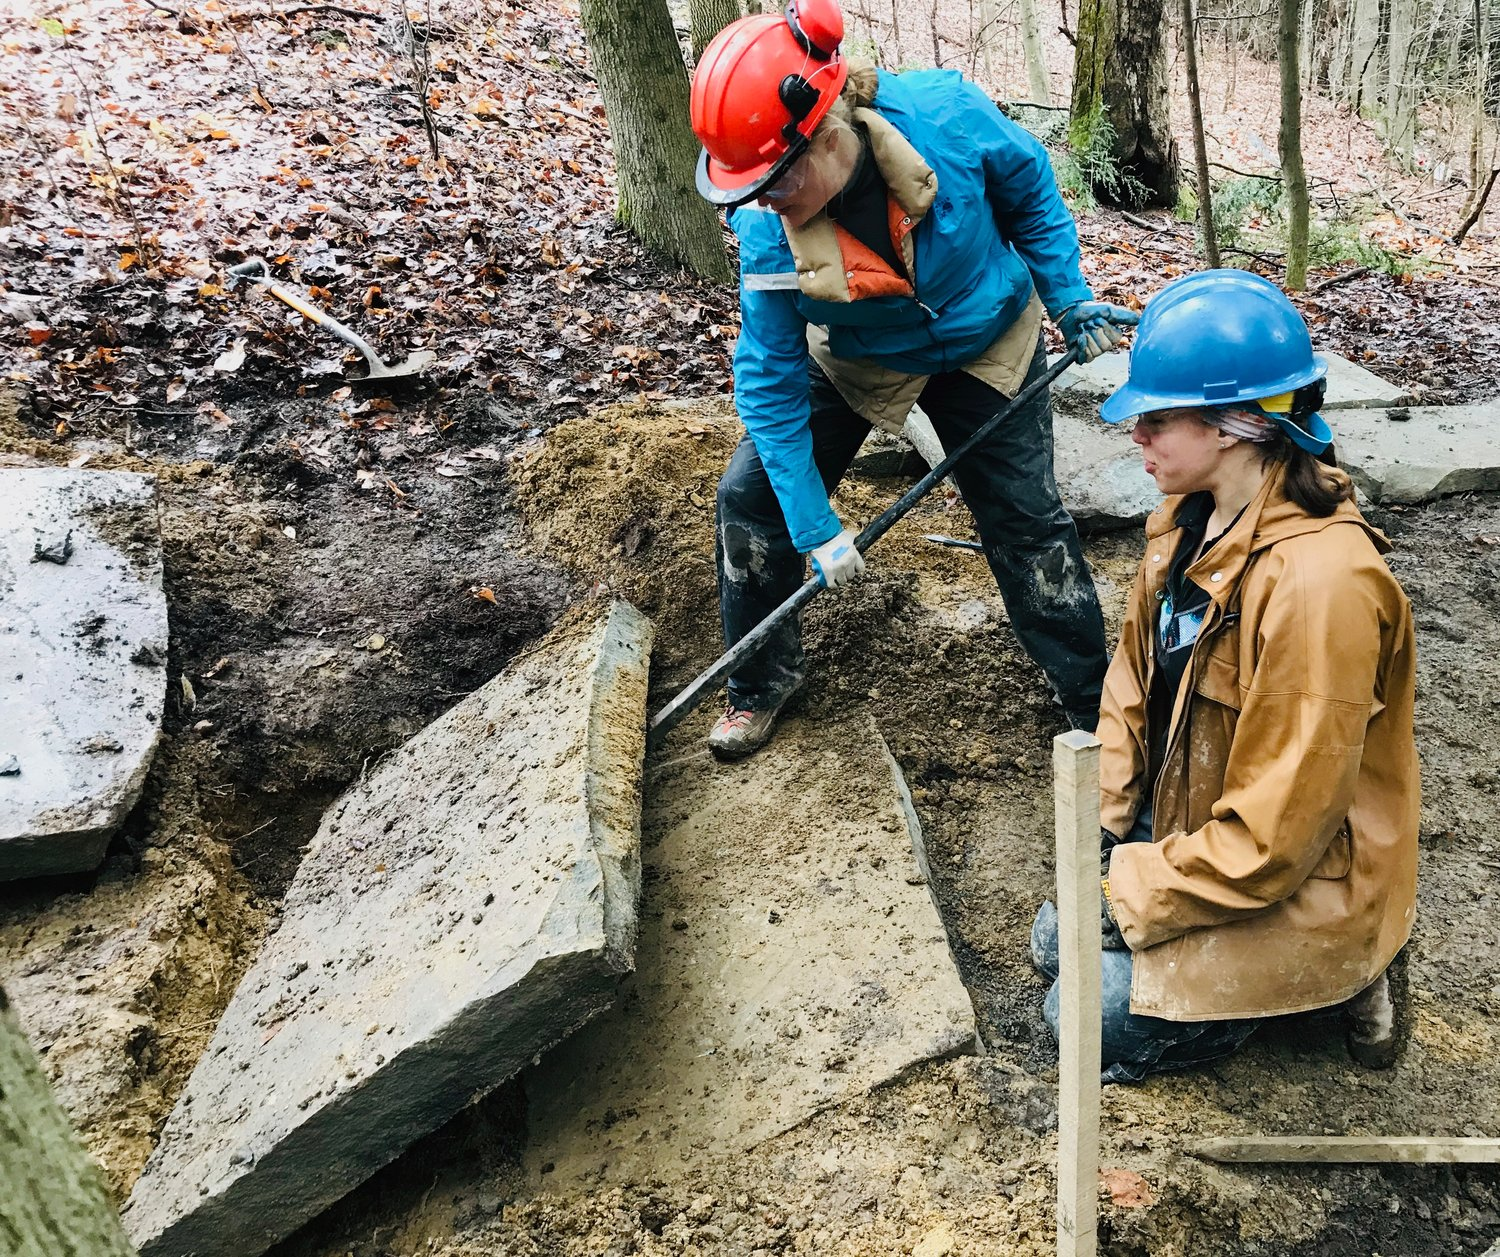 Elyse Peters of the Walker County Health Action Partnership got some firsthand experience in stonework as an Emerging Trail Leader at the recent International Trails Symposium.